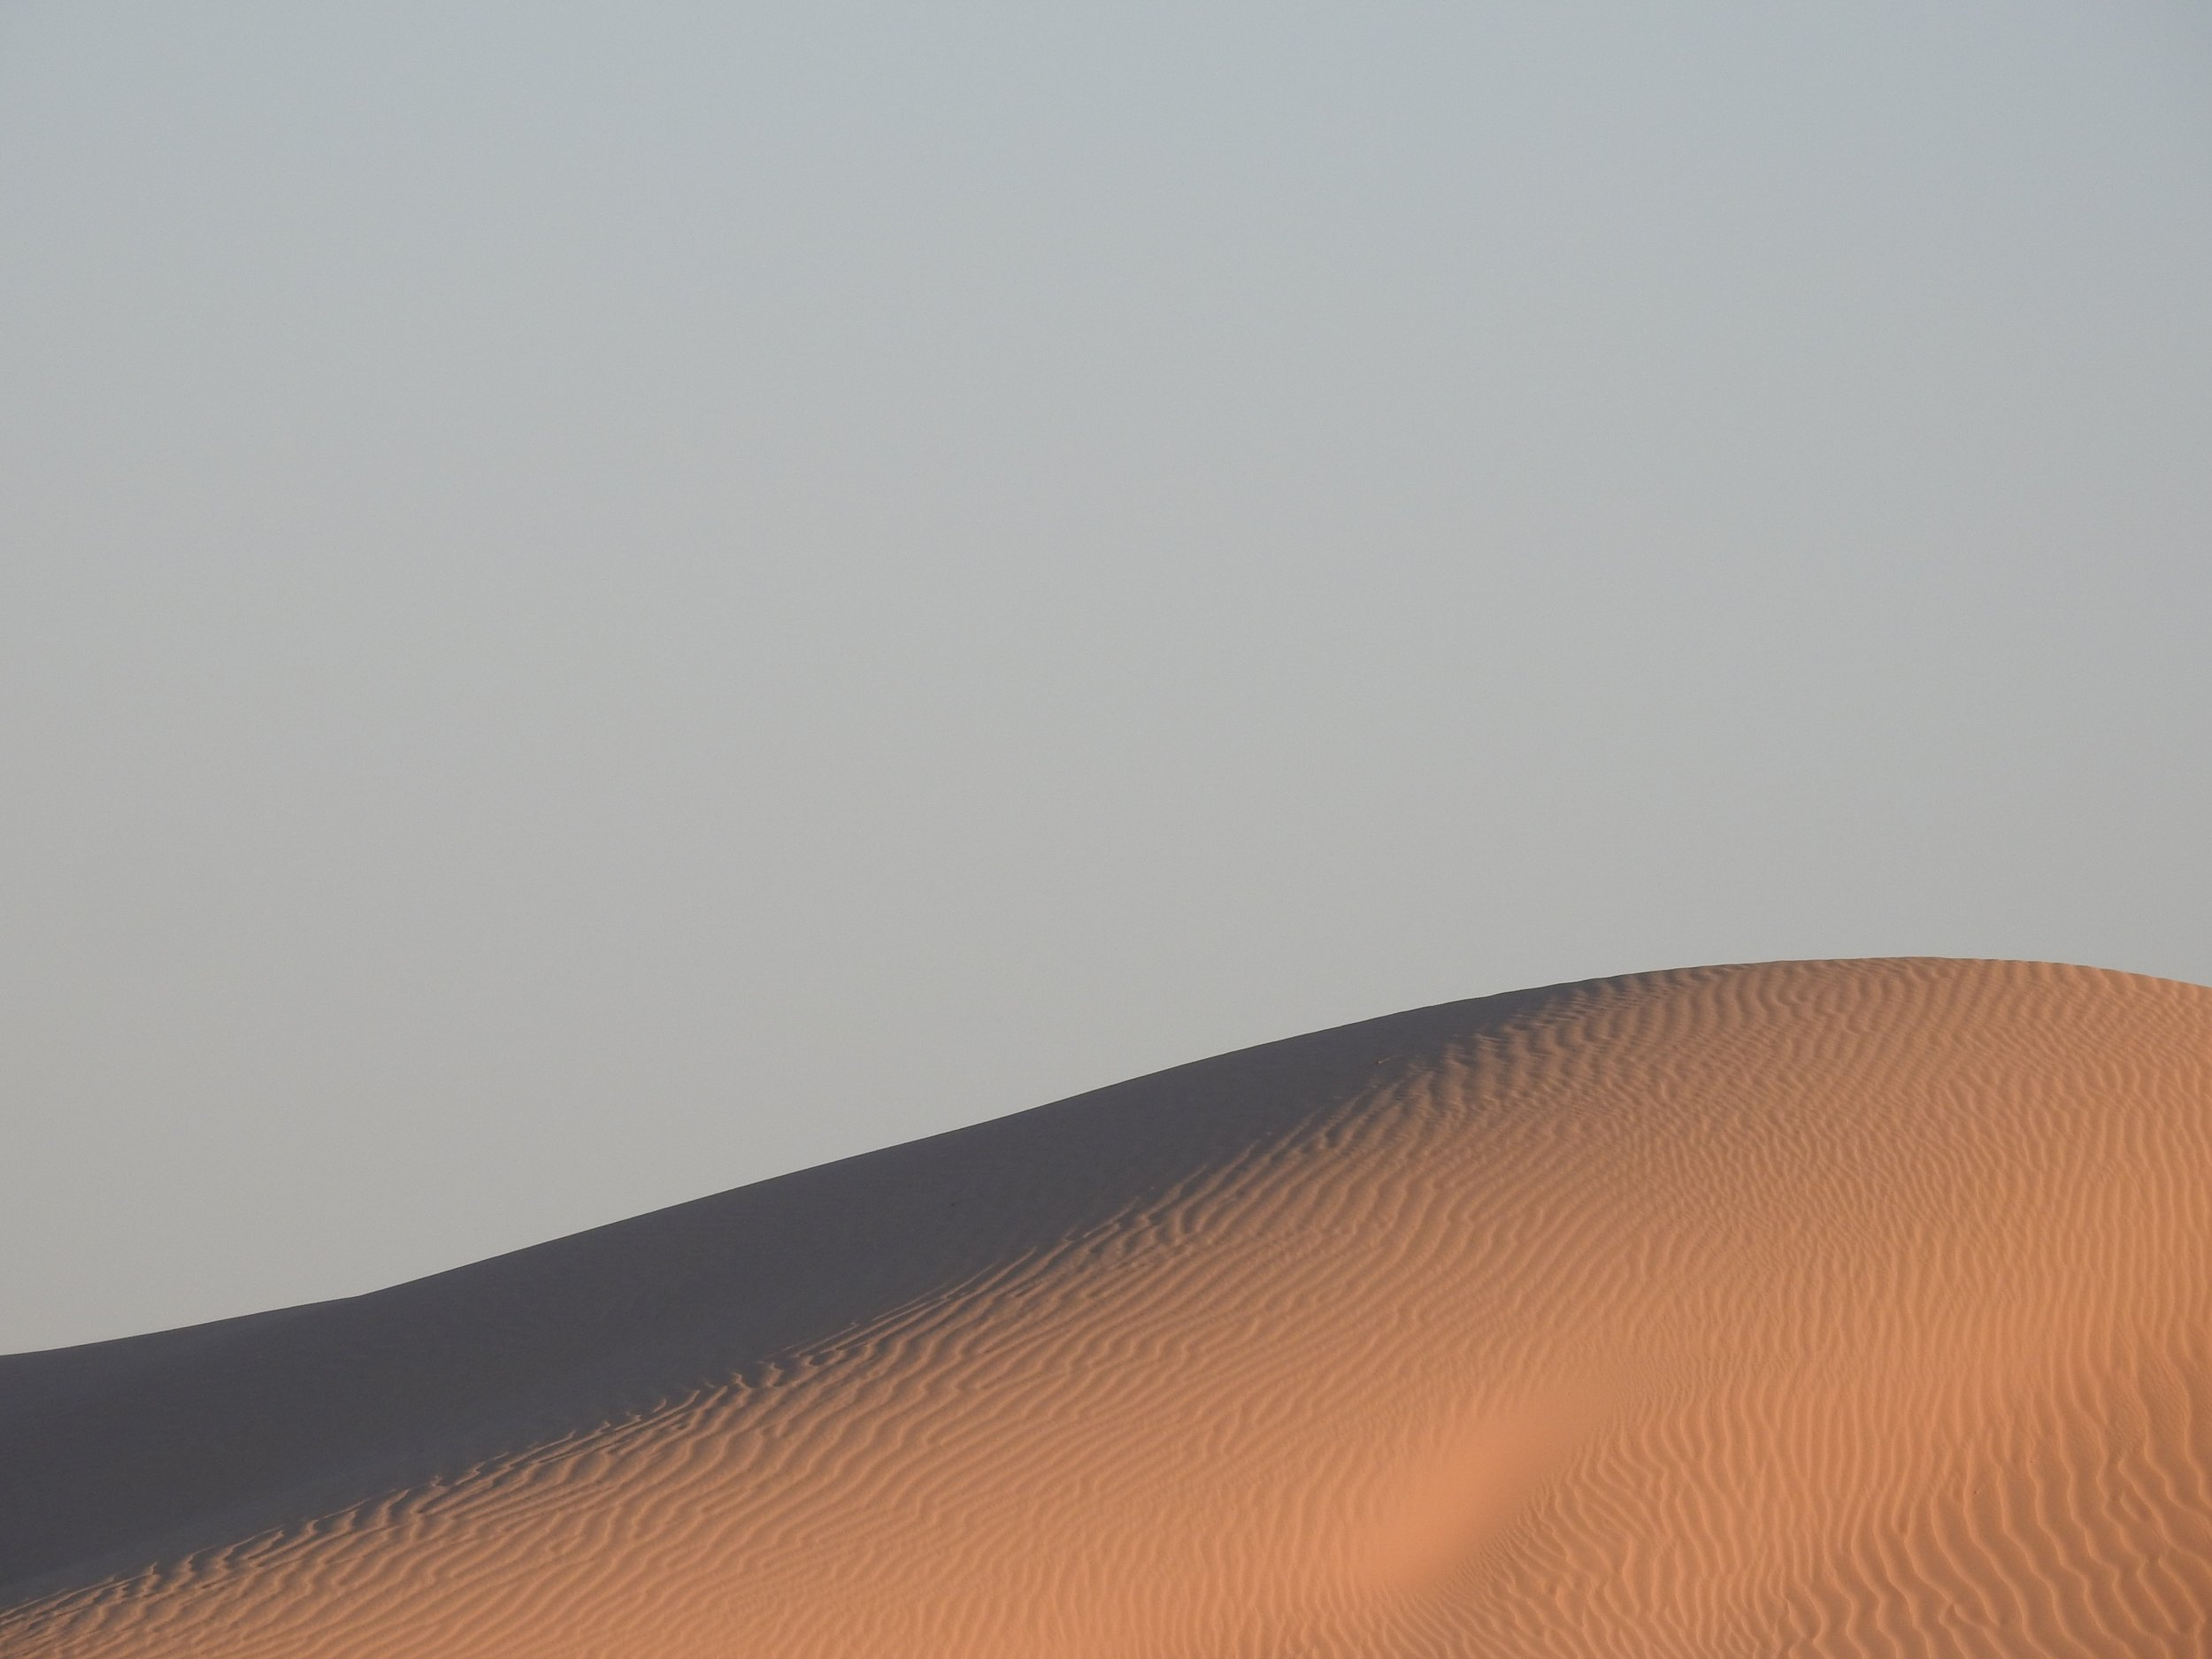 What You Learn from the Desert